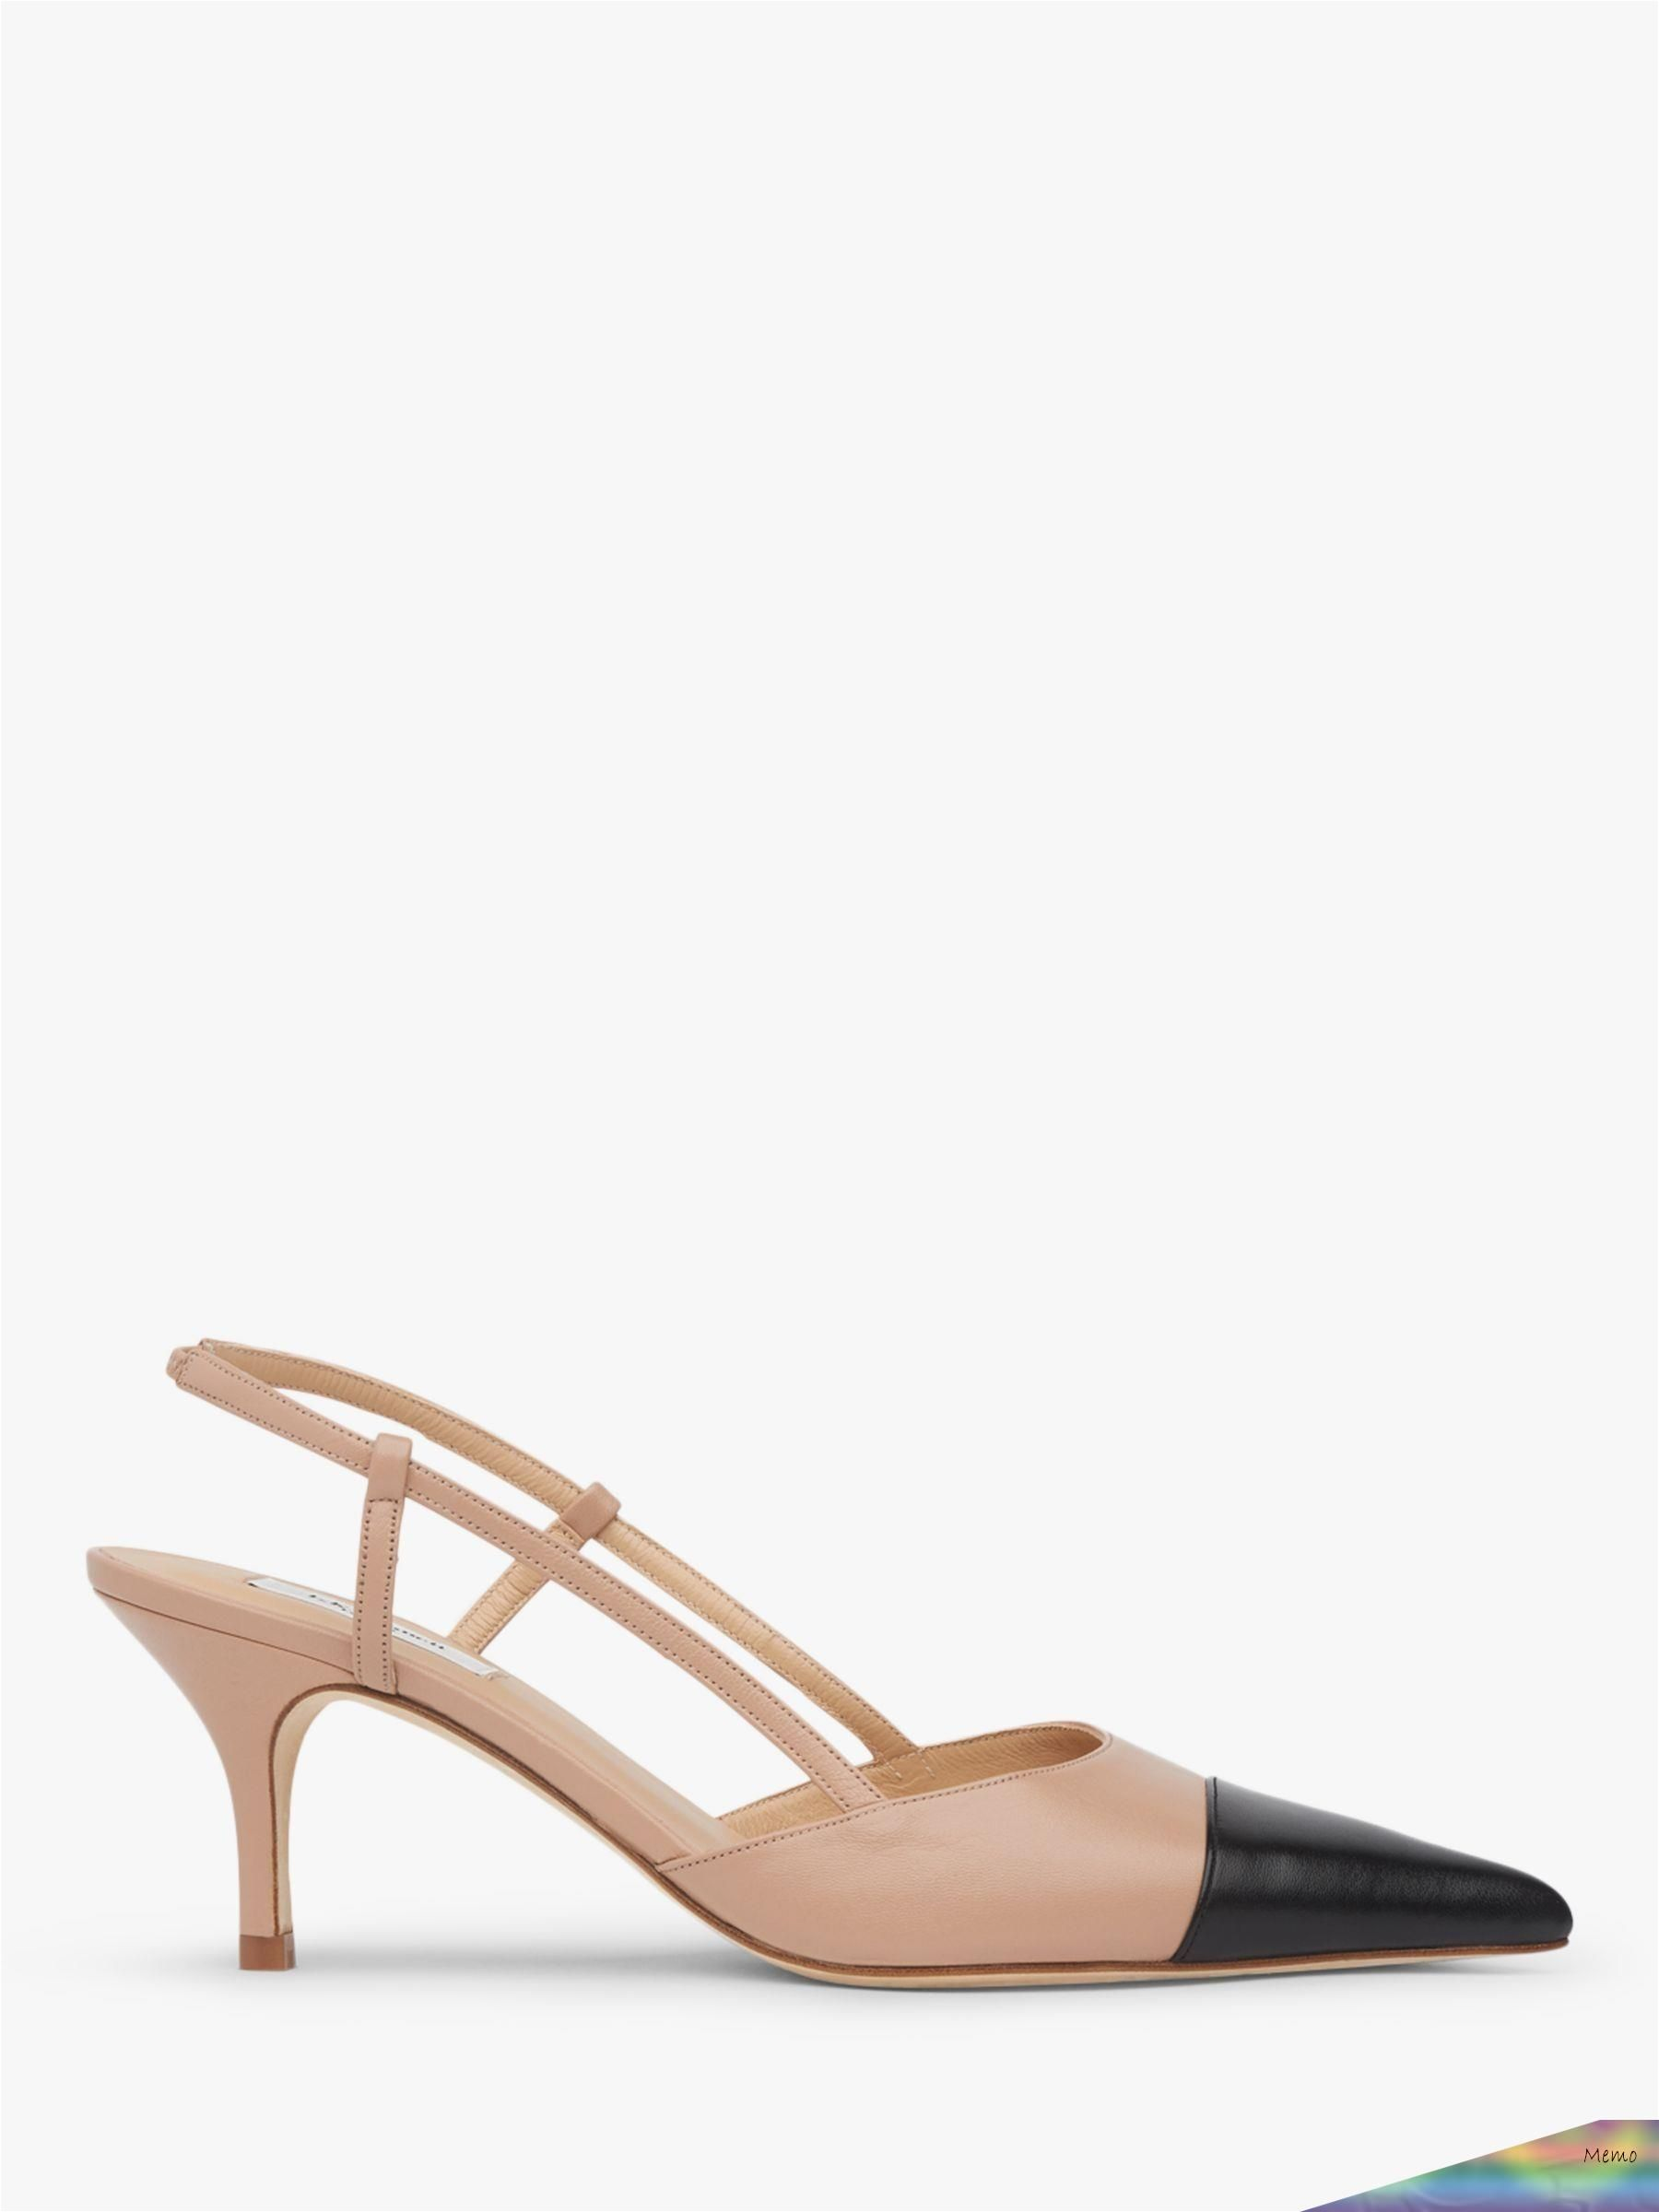 Apr 20 2020 L K Bennett Hally Open Kitten Heel Court Shoes Beige Black Leather In 2020 Kitten Heel Shoes Heels Kitten Heels